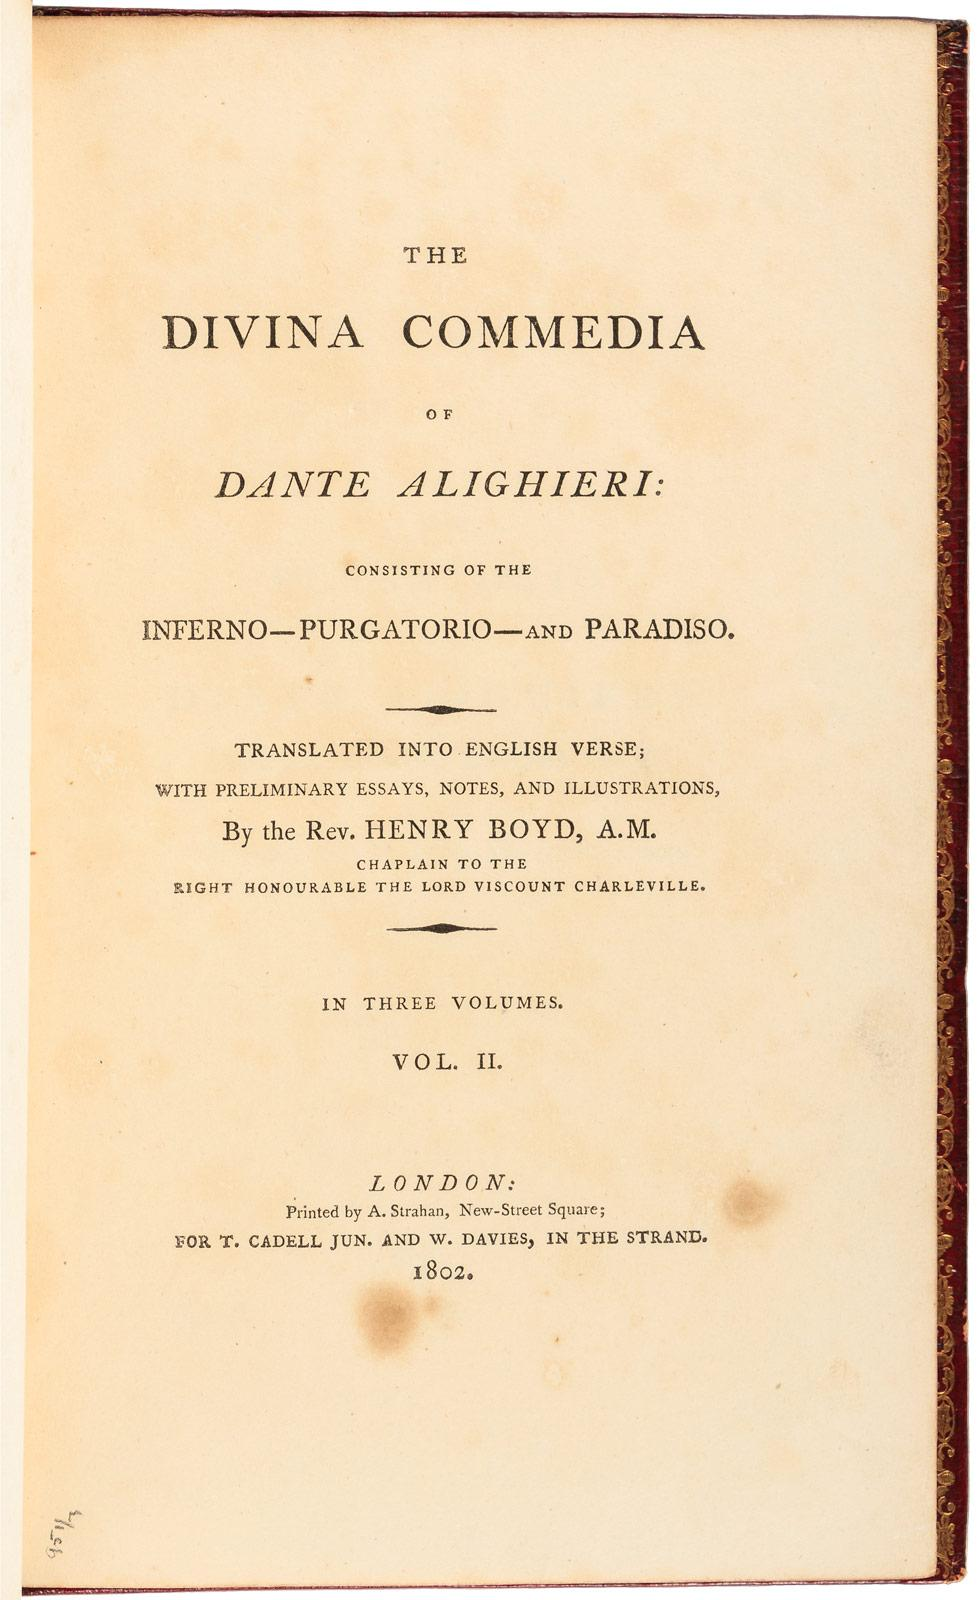 dante alighieri essay Dante was born in florence in may 1265 his family was of an old lineage, of noble birth but no longer wealthy  dante alighieri biography critical essays the .